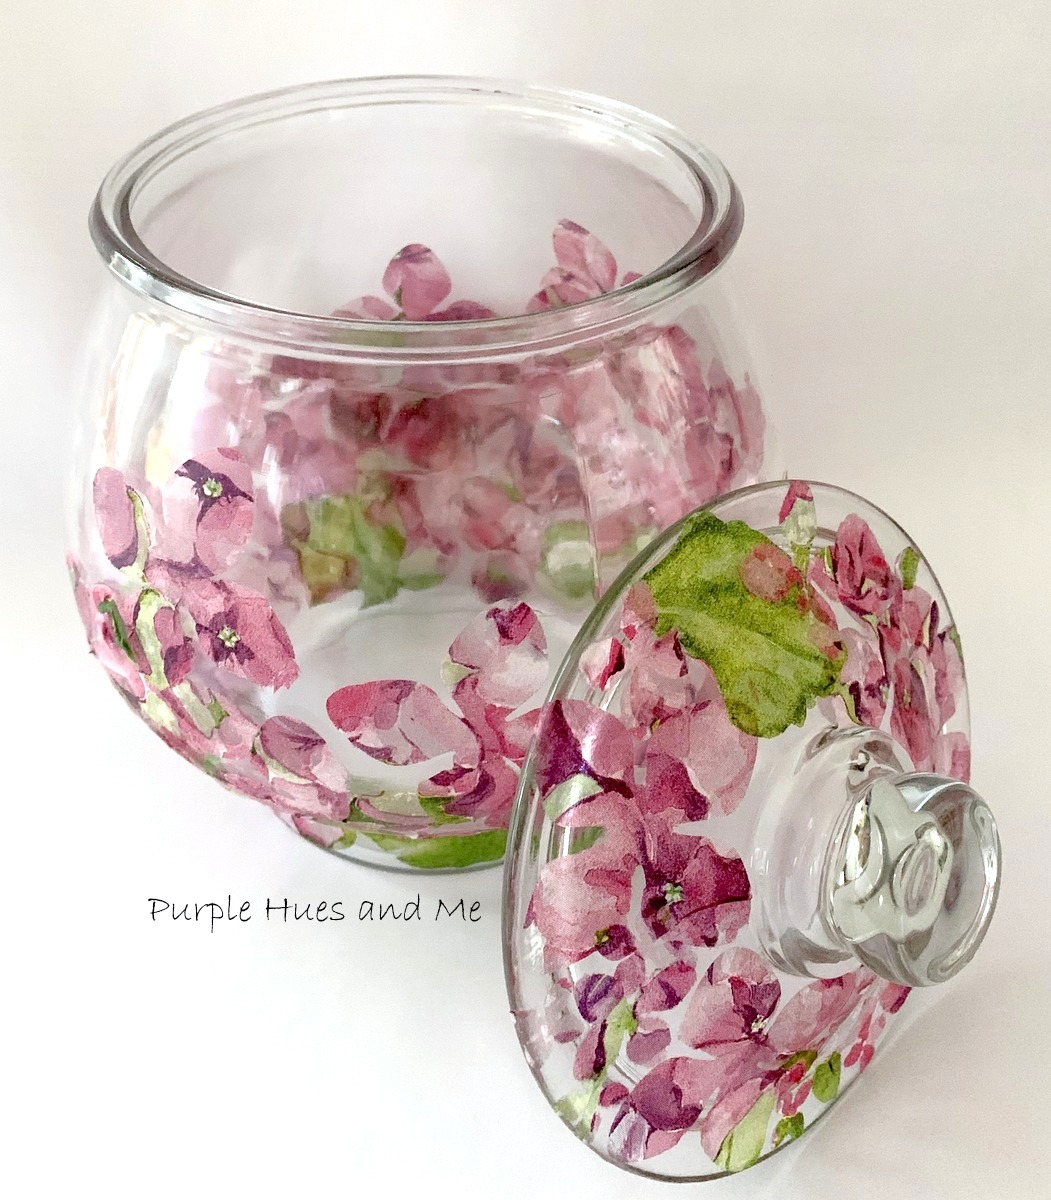 Decoupage napkin flowers on glass jar by Purple Hues and Me, featured on DIY Salvaged Junk Projects 534 on Funky Junk!